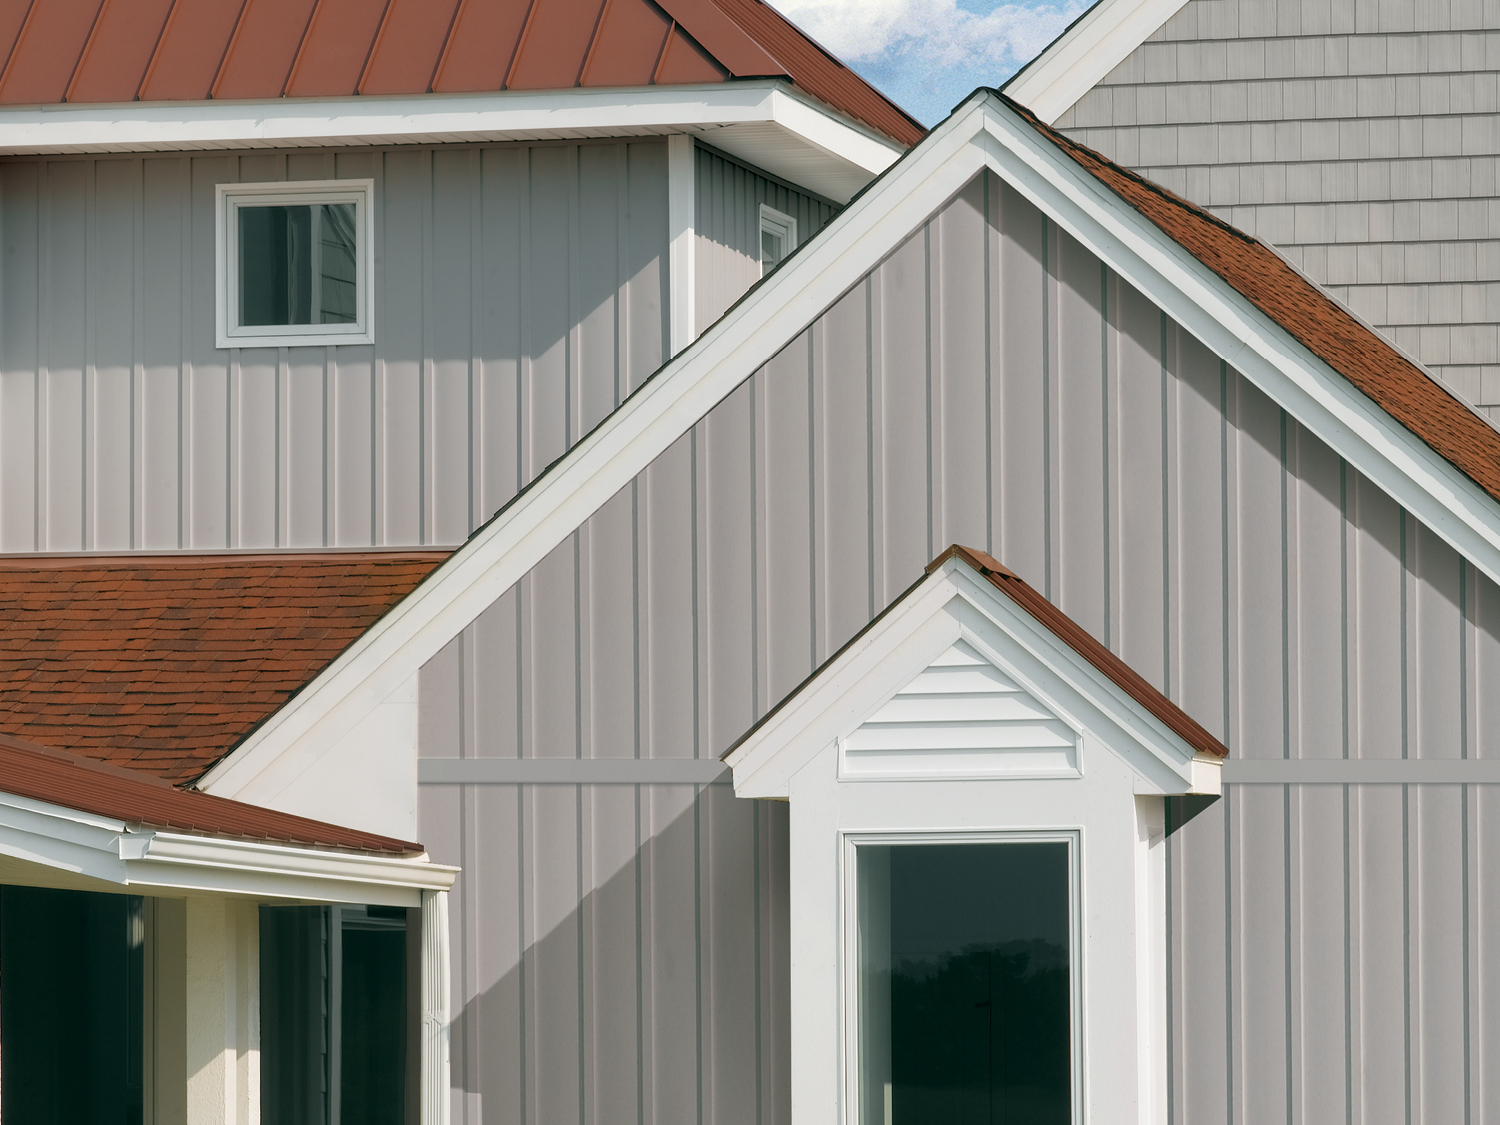 Certainteed siding vinyl polymer stone and composite for Vertical siding options